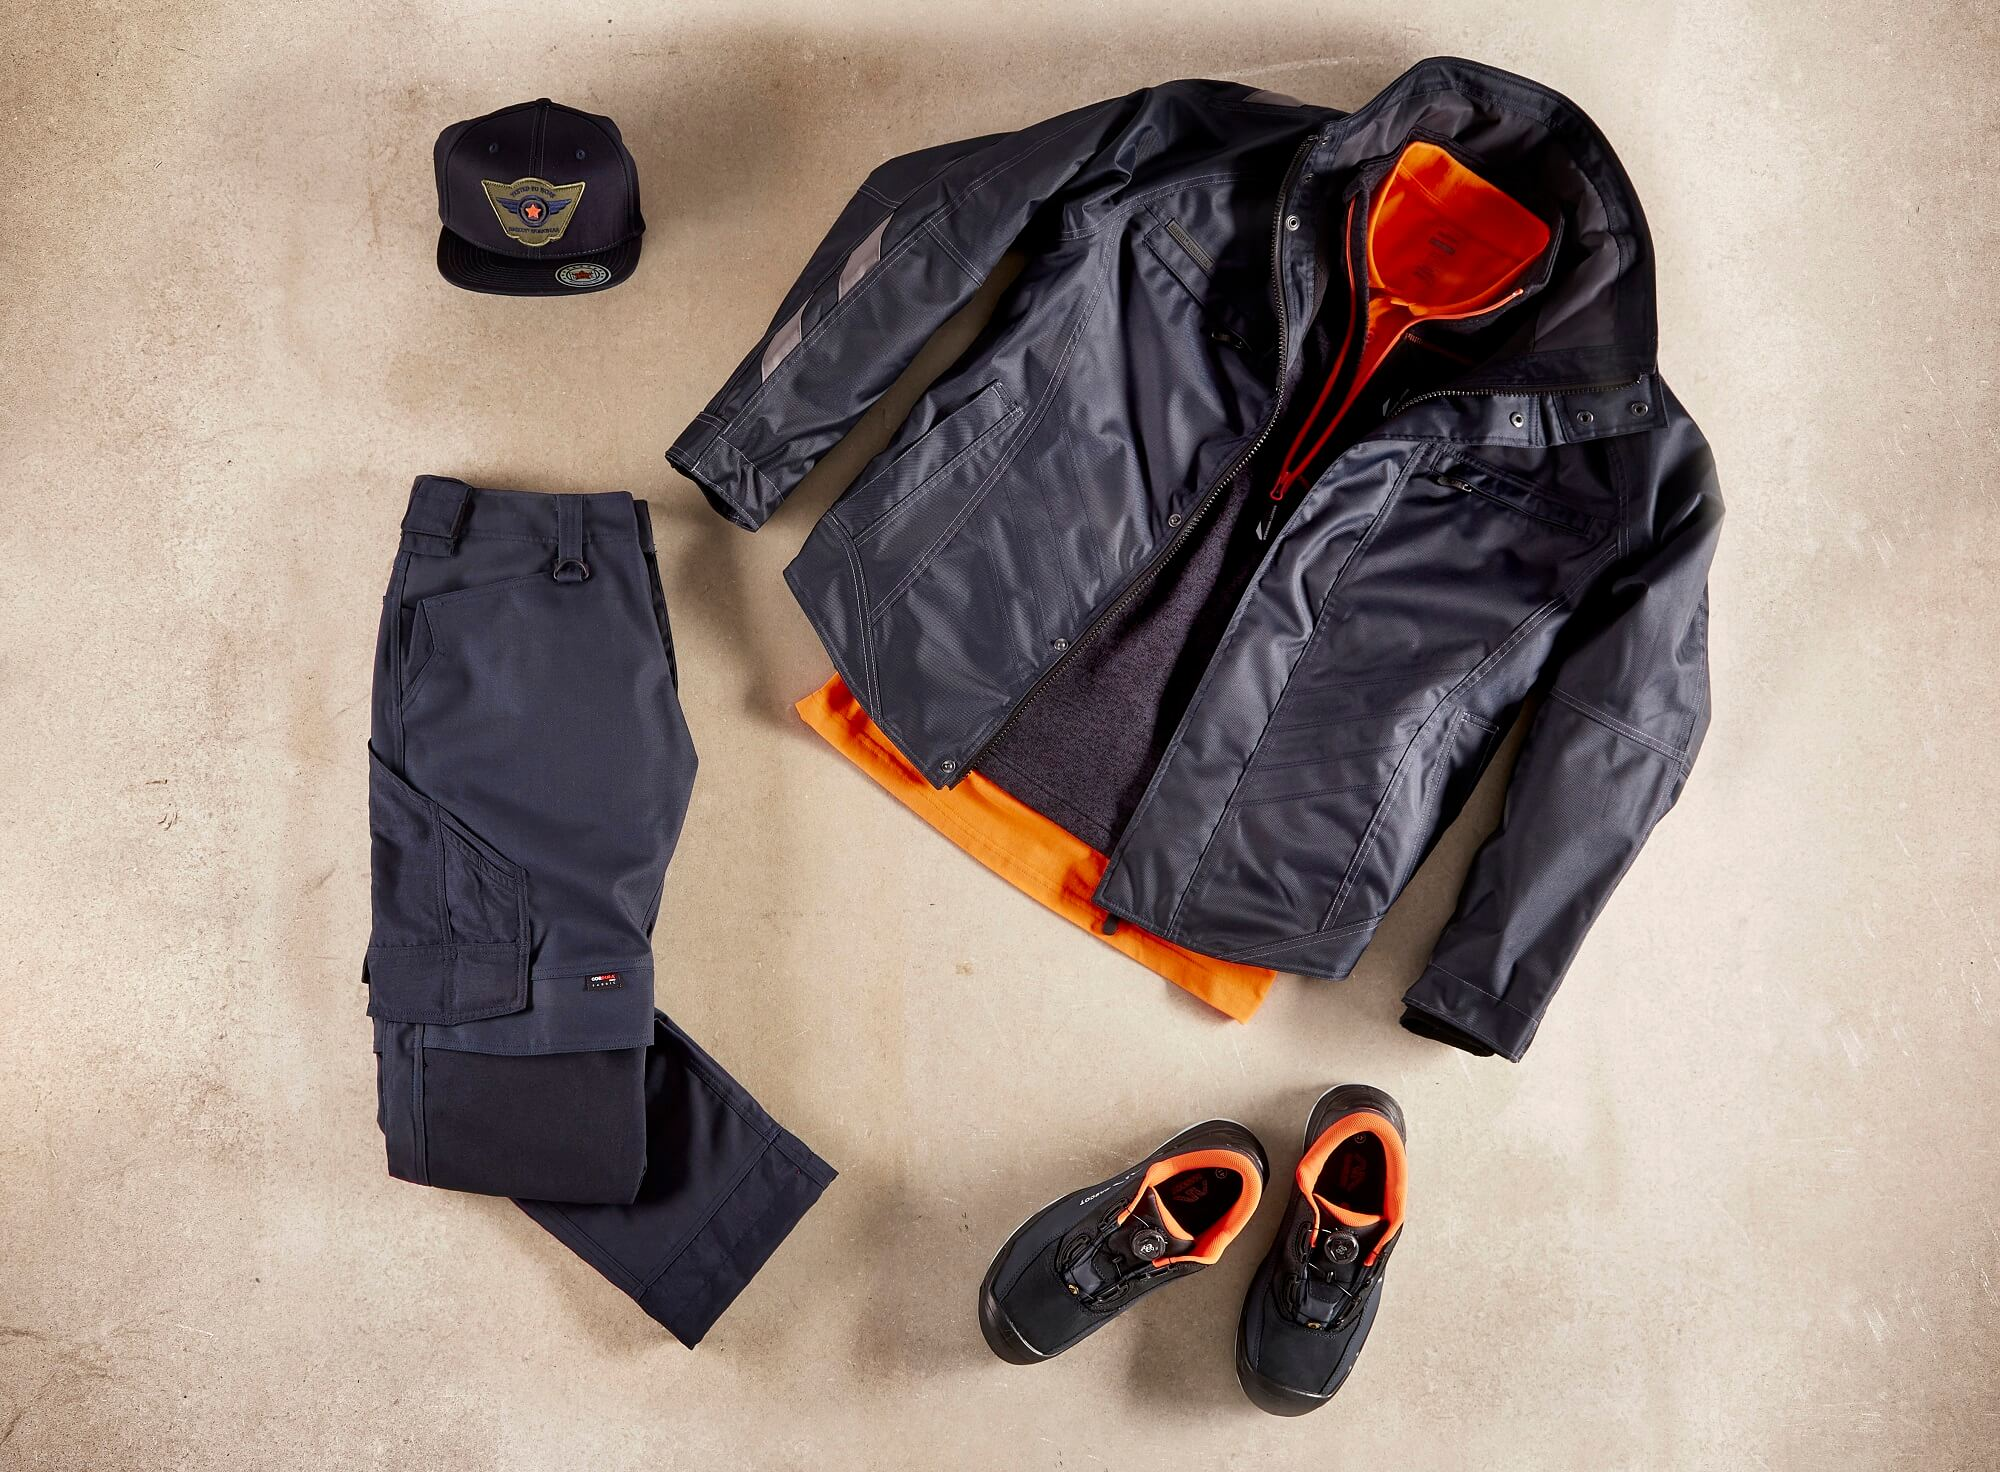 Work Jacket, Trousers, Cap & Safety footwear - Navy - Collage